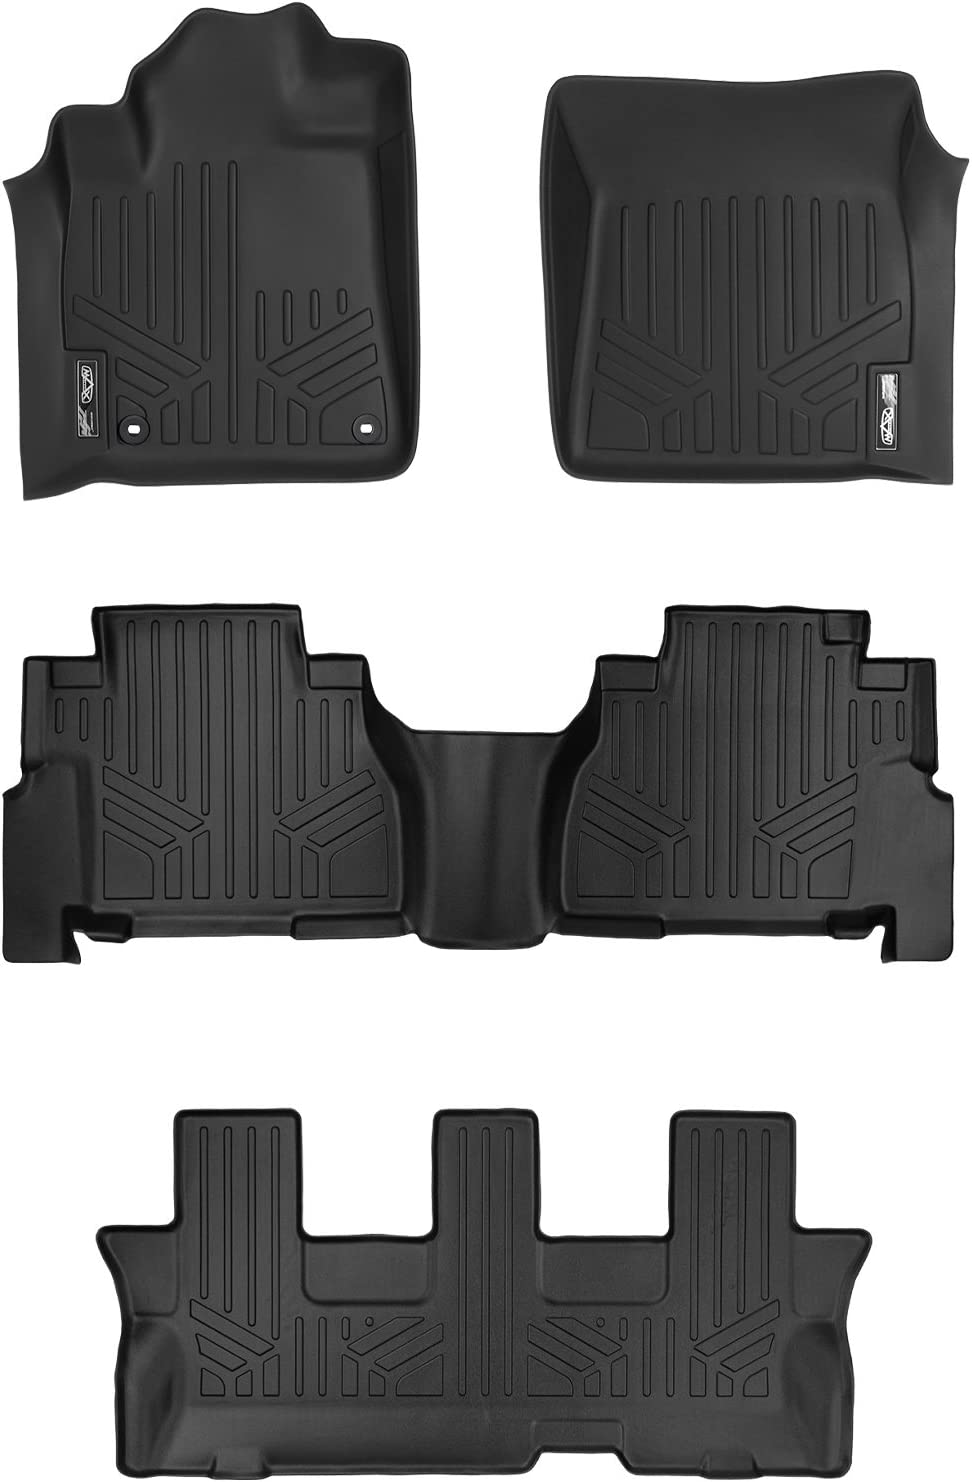 Black 3 Row Set 2012-2017 MAX LINER A0108//B0272//C0272 MAXFLOORMAT Floor Mats for Toyota Sequoia